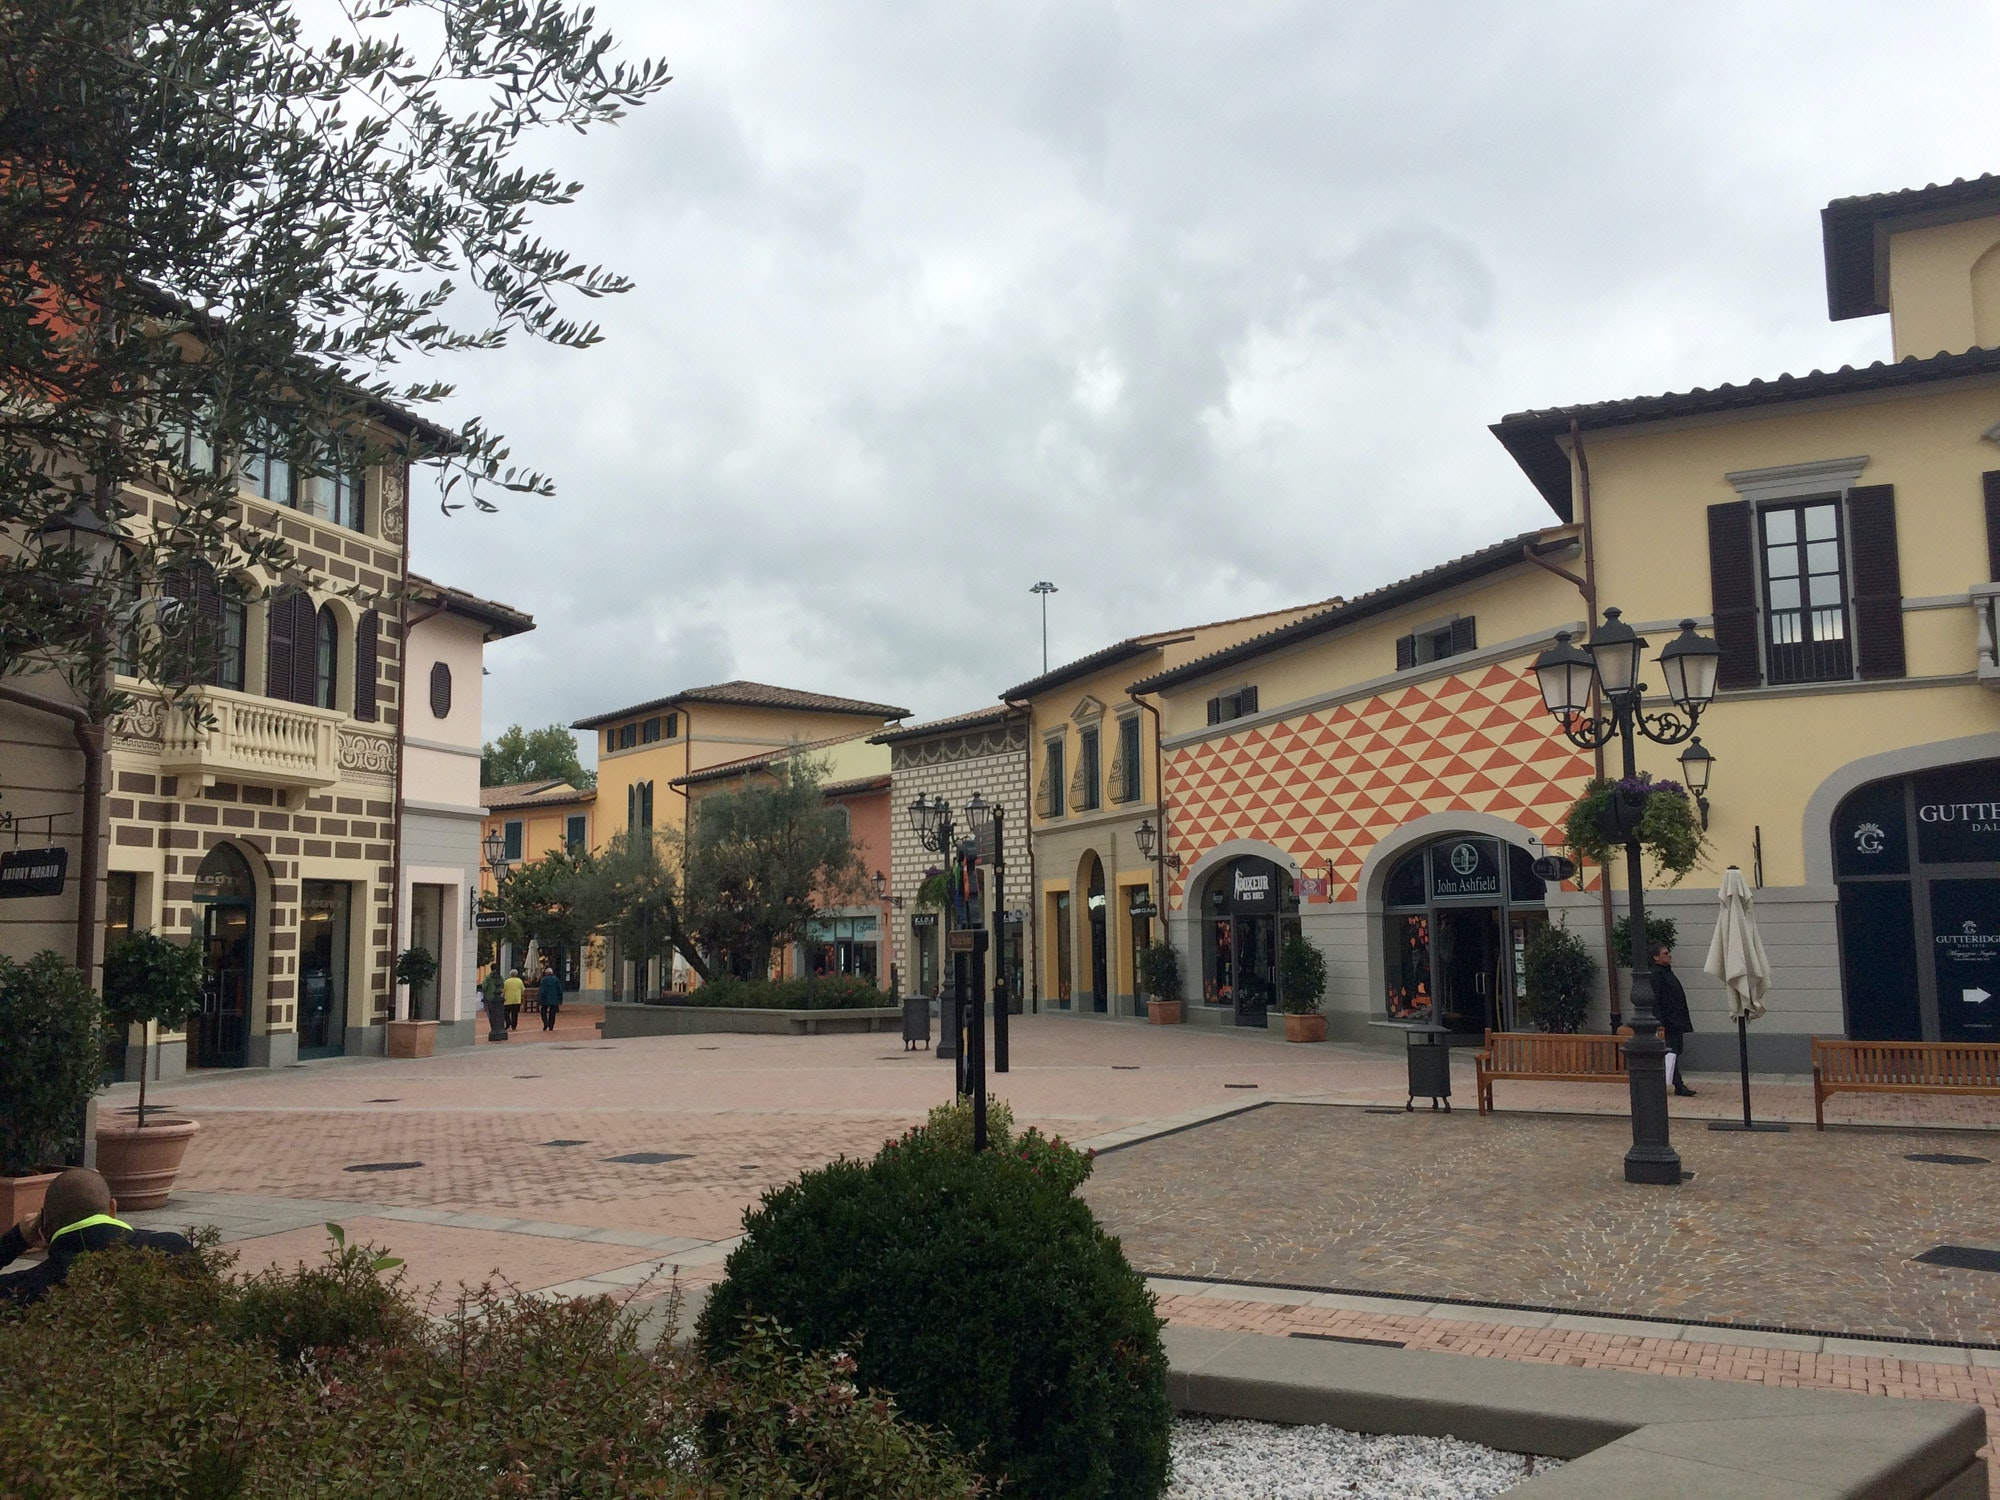 Home E Designer Outlet Part - 42: Outlets Near Florence,Outlet Malls Near Florence:Shopping Outlets In Tuscany